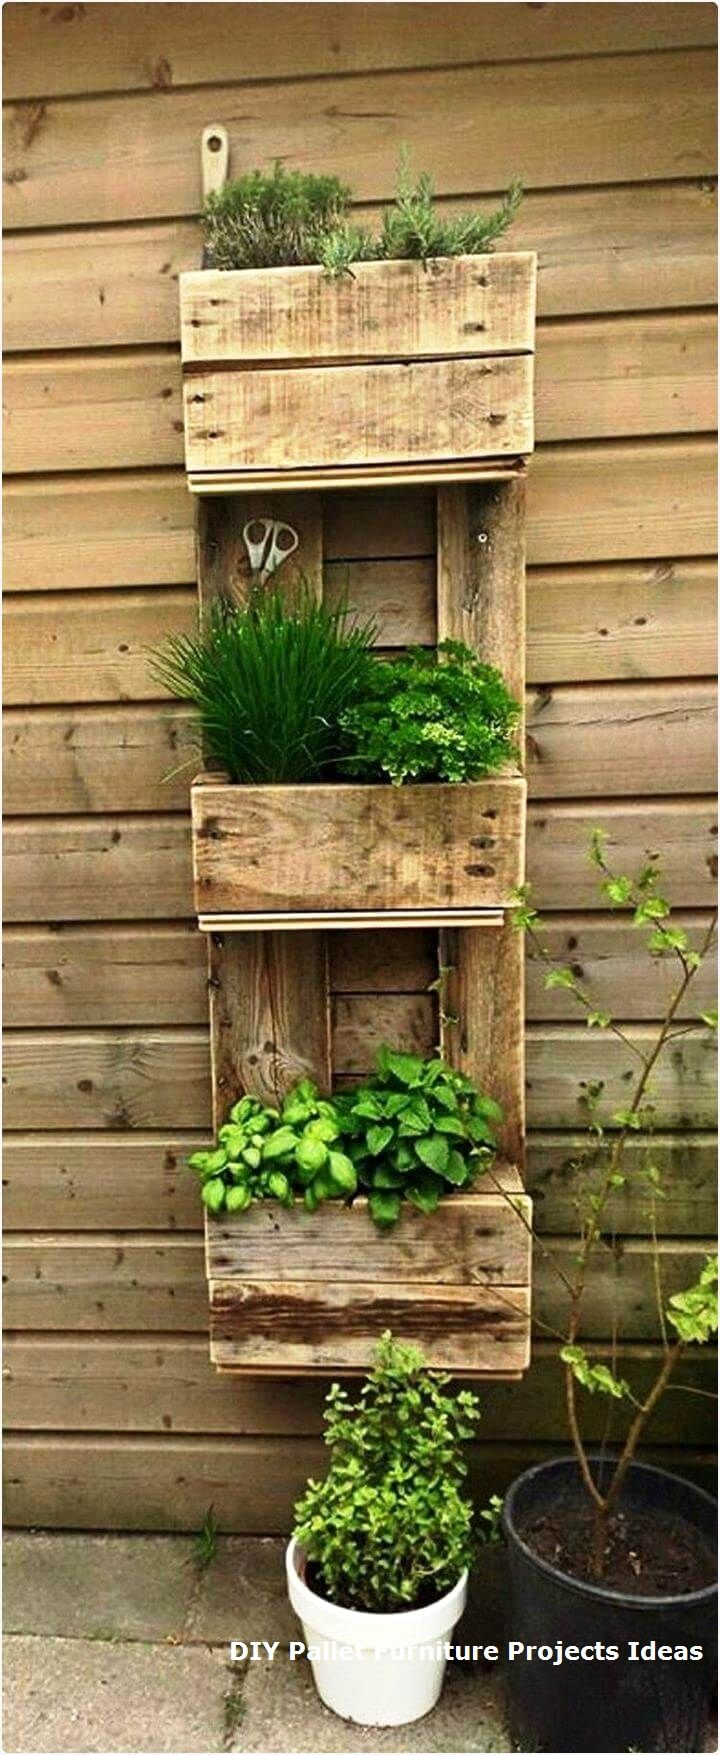 40 Diy Easy Vertical Pallet Planters Ideasnew Diy Pallet Projects And Ideas On A Budget Palletfurni Herb Garden Pallet Pallet Diy Pallets Garden